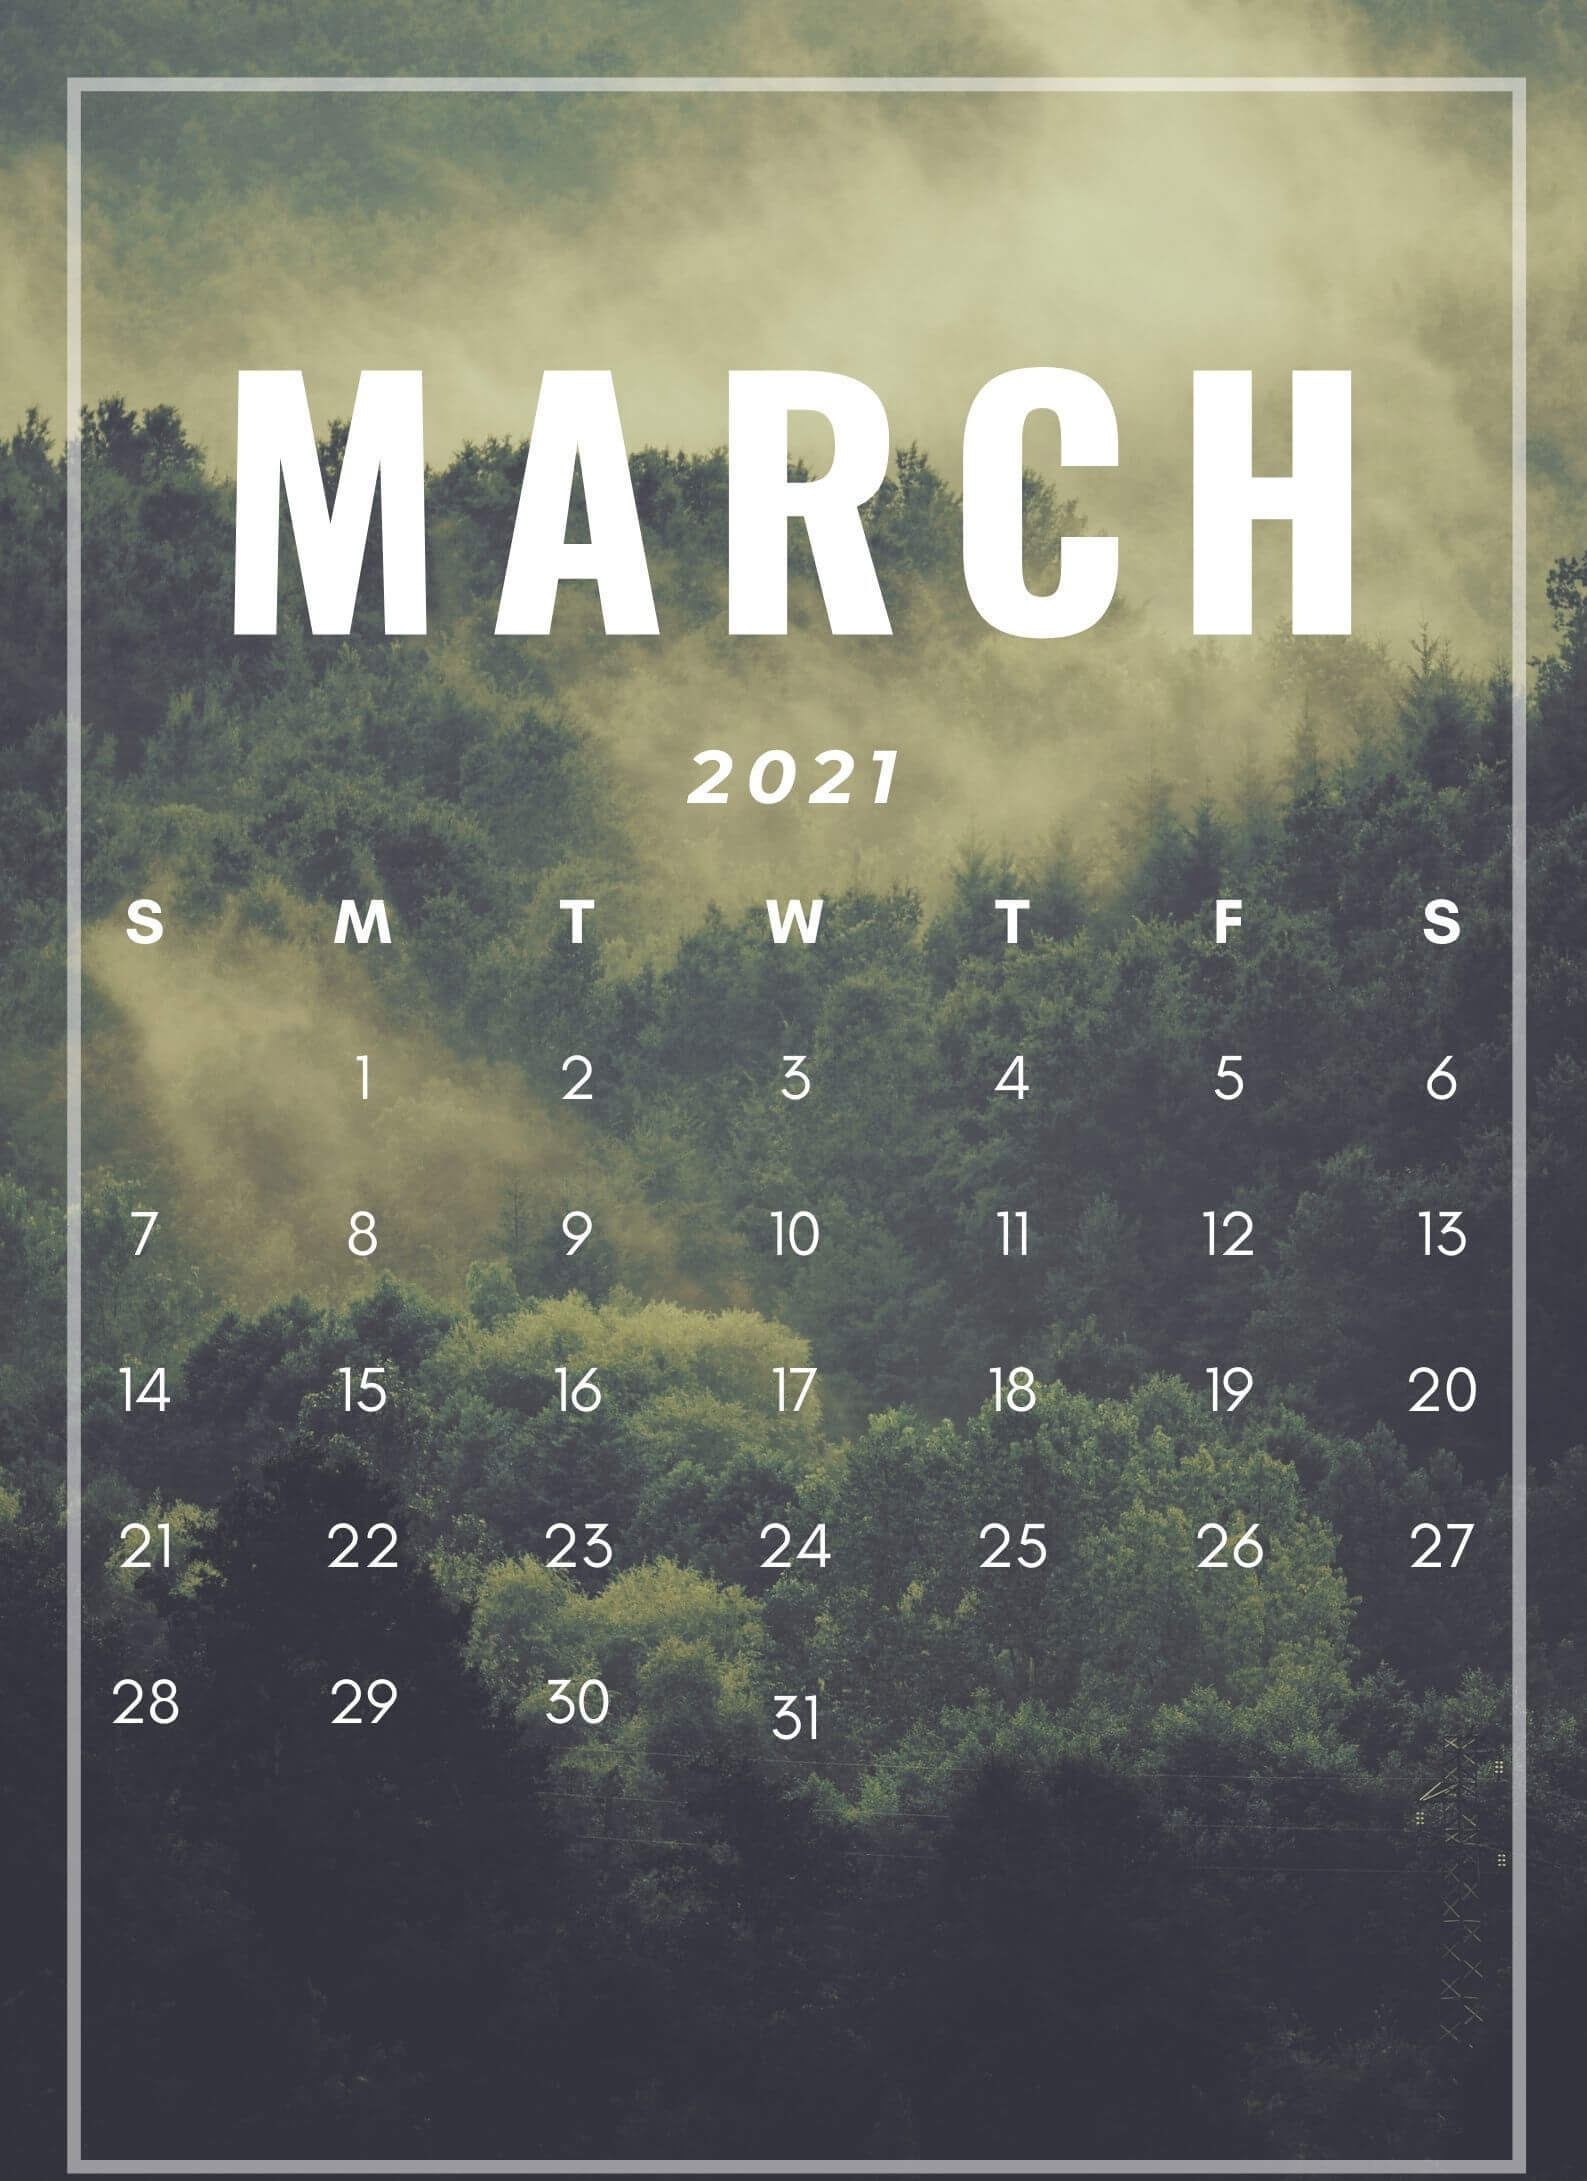 March 2021 iPhone Calendar Wallpaper